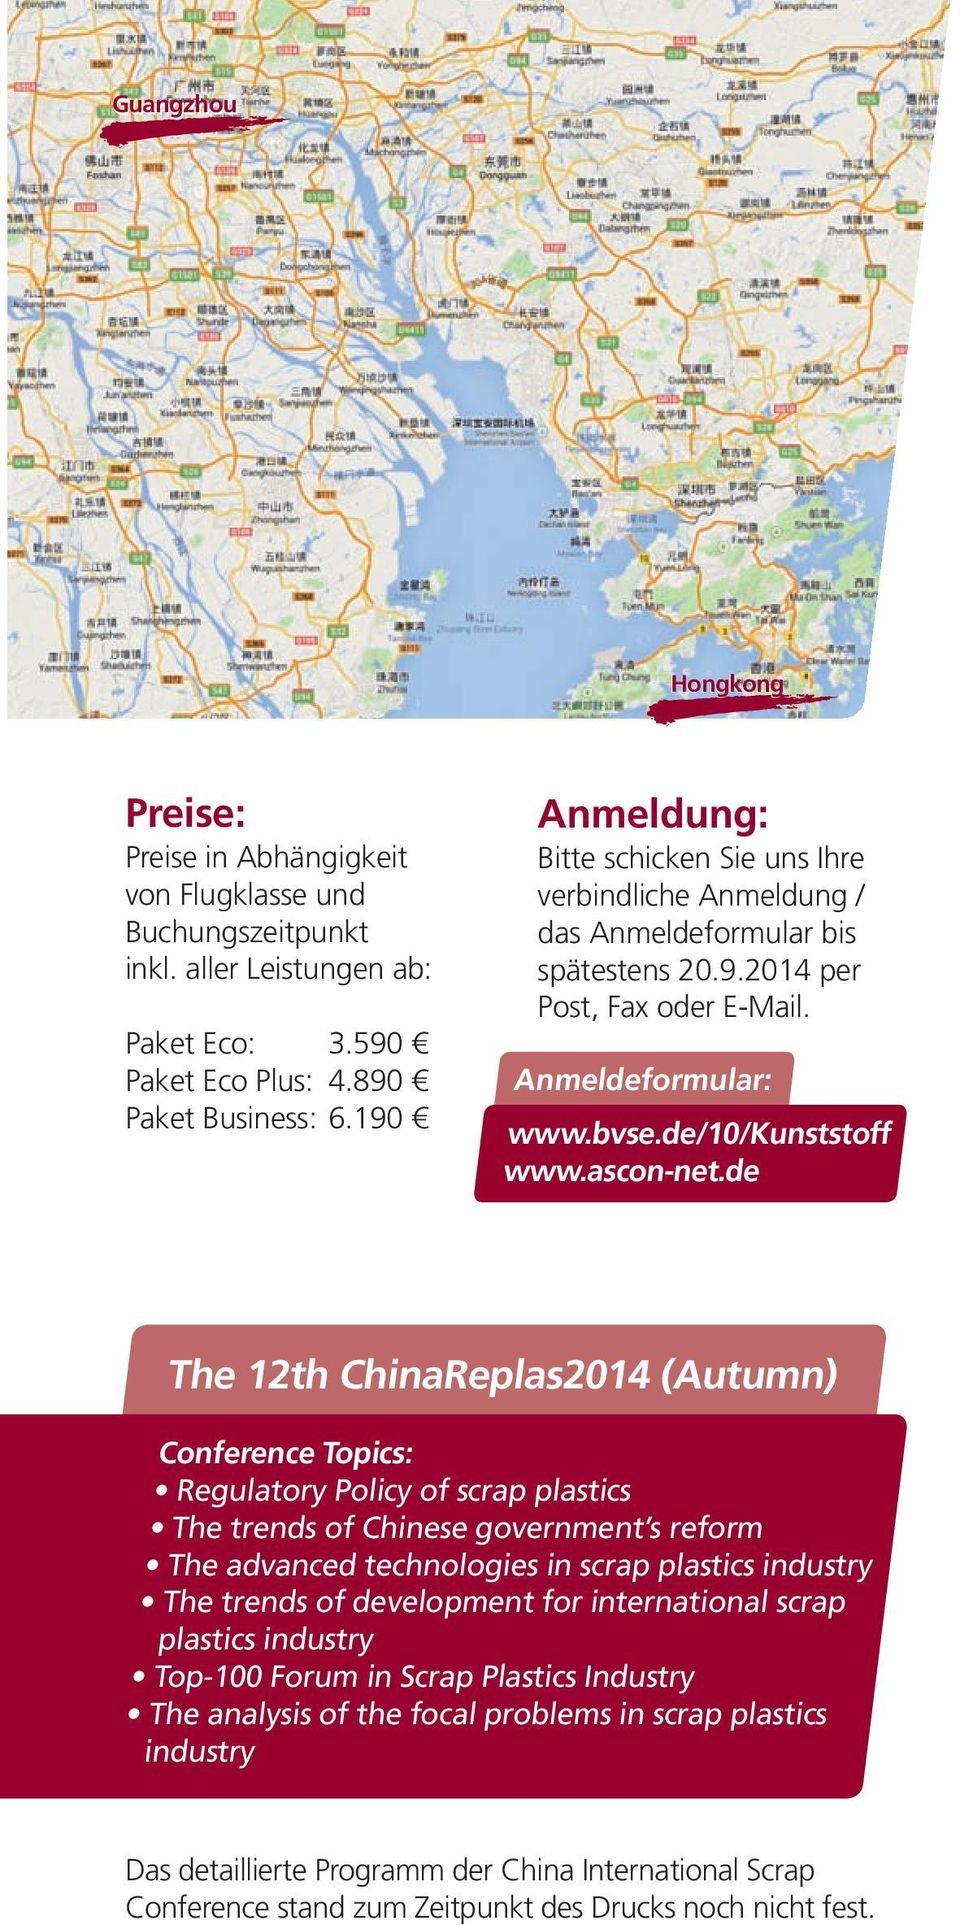 de The 12th ChinaReplas2014 (Autumn) Conference Topics: Regulatory Policy of scrap plastics The trends of Chinese government s reform The advanced technologies in scrap plastics industry The trends